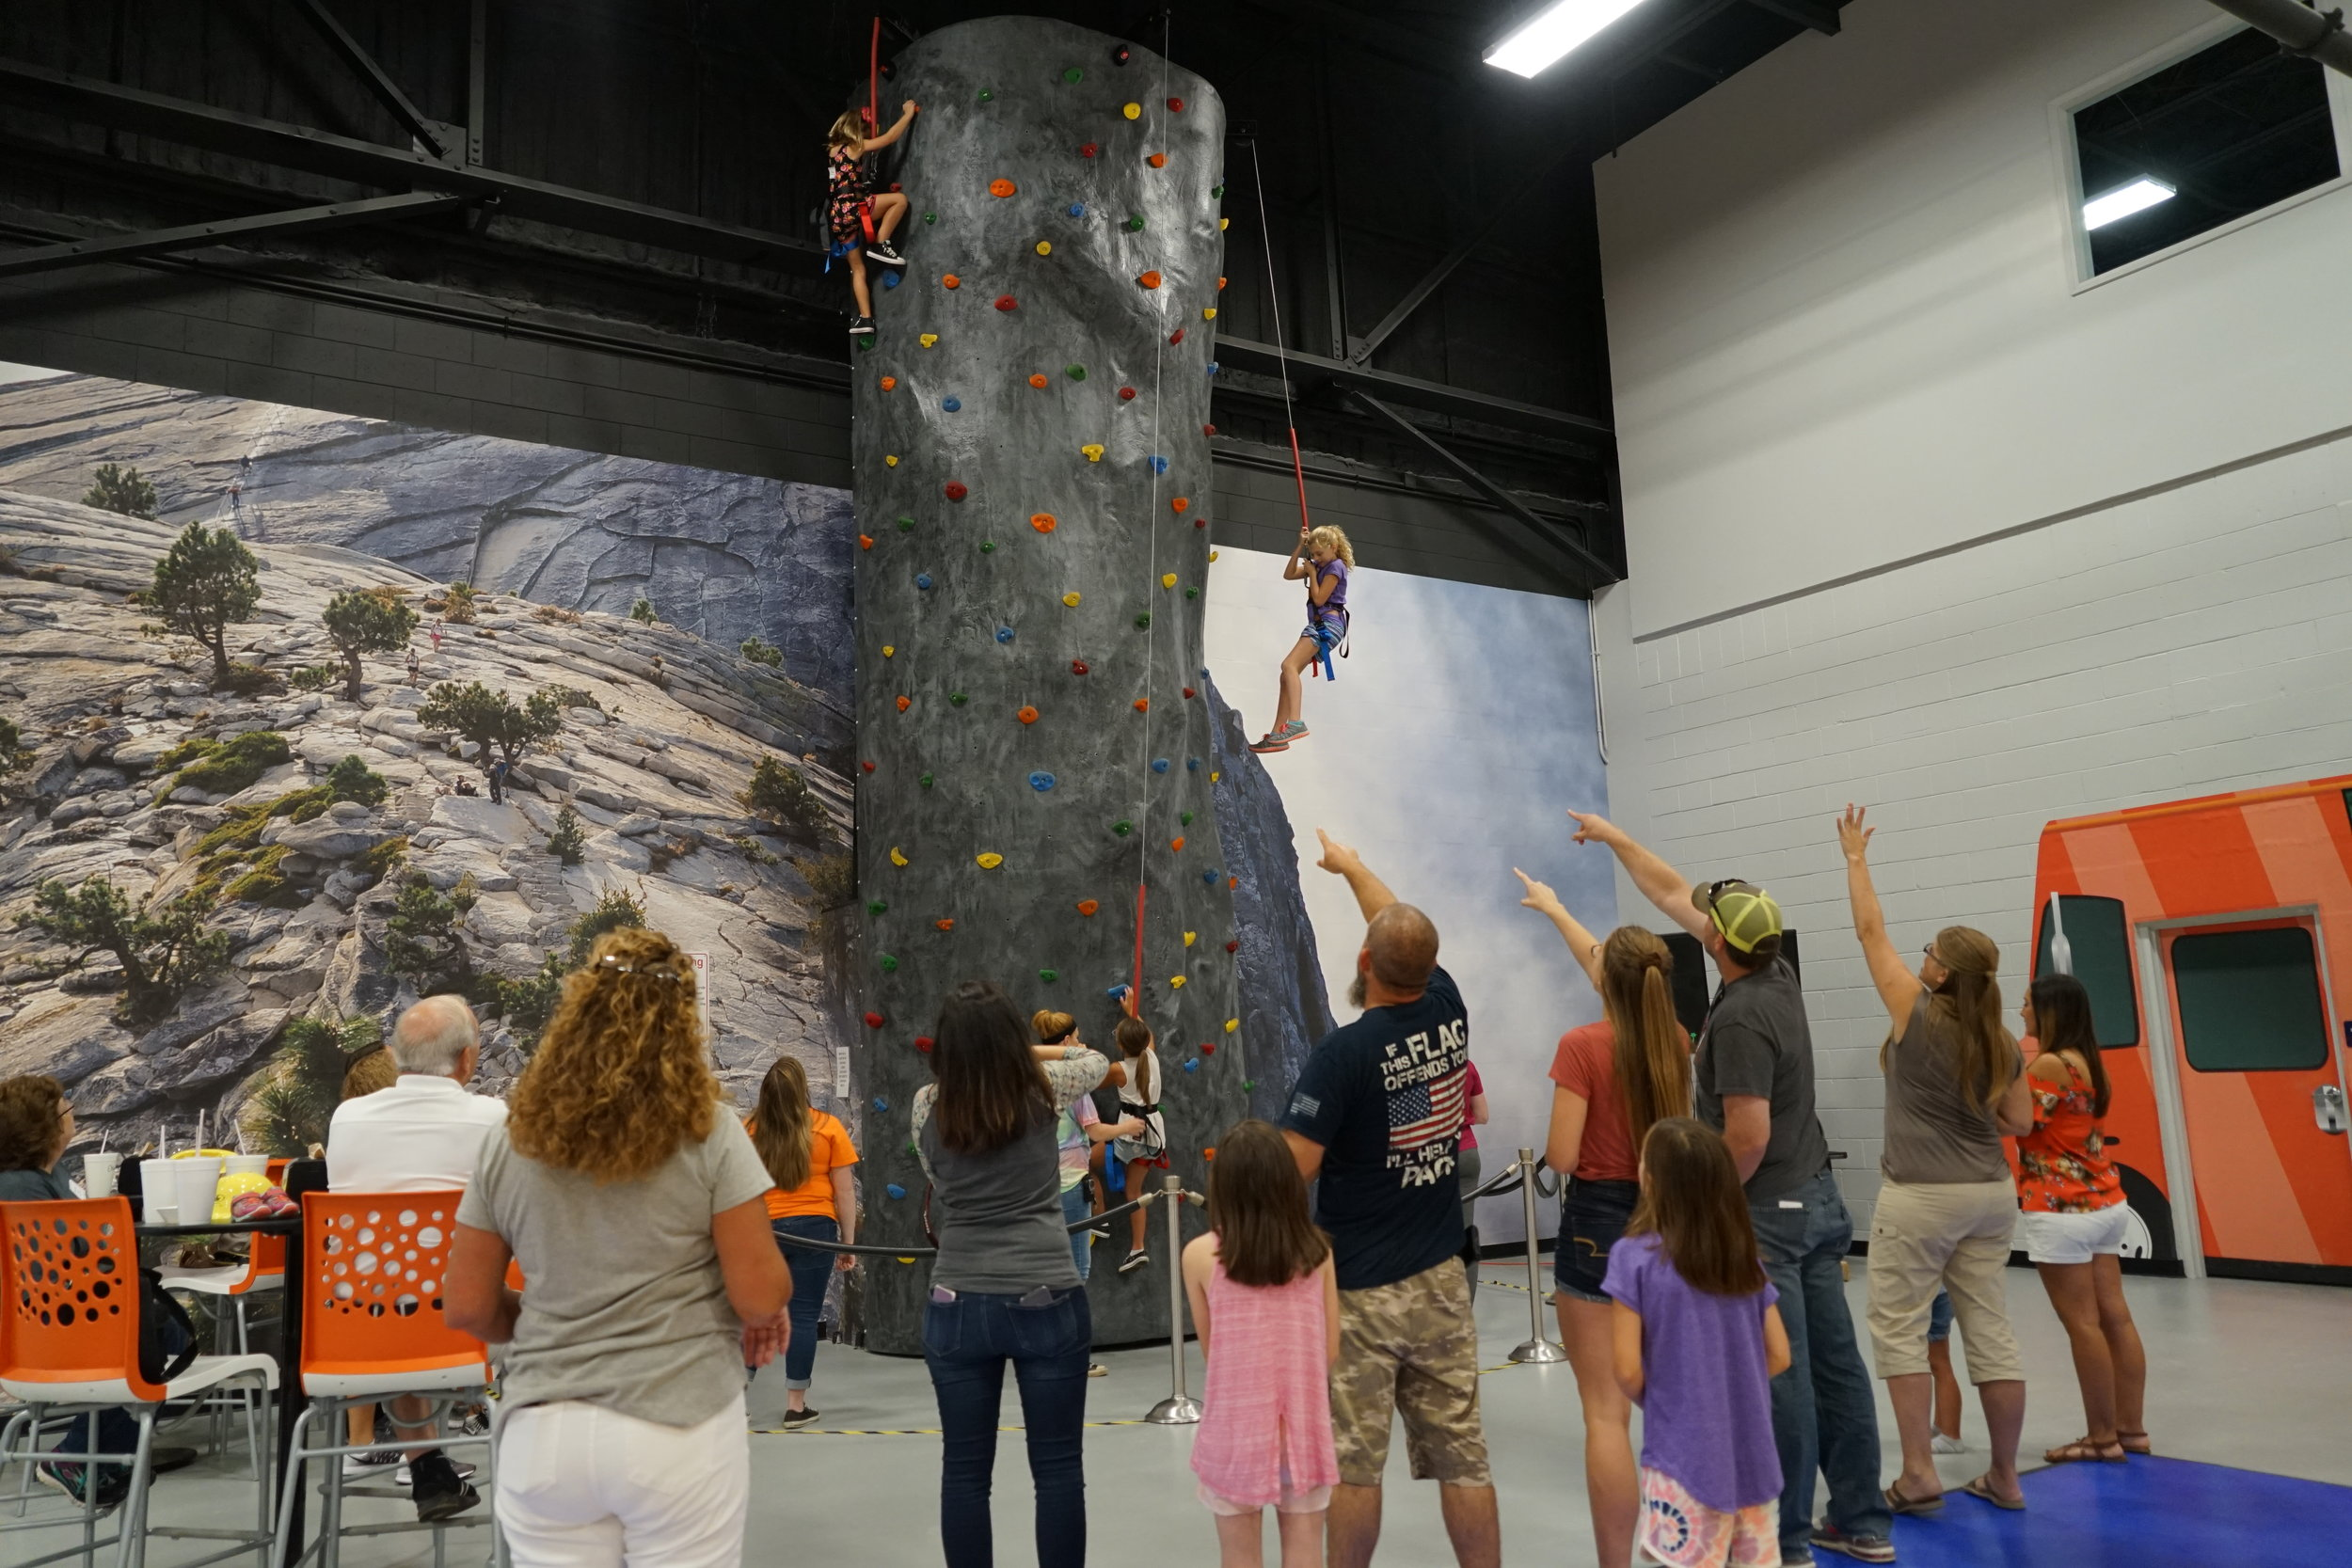 24 Foot Rock Wall - Feeling ambitious? Come try out our rock wall and put your skills to the test.